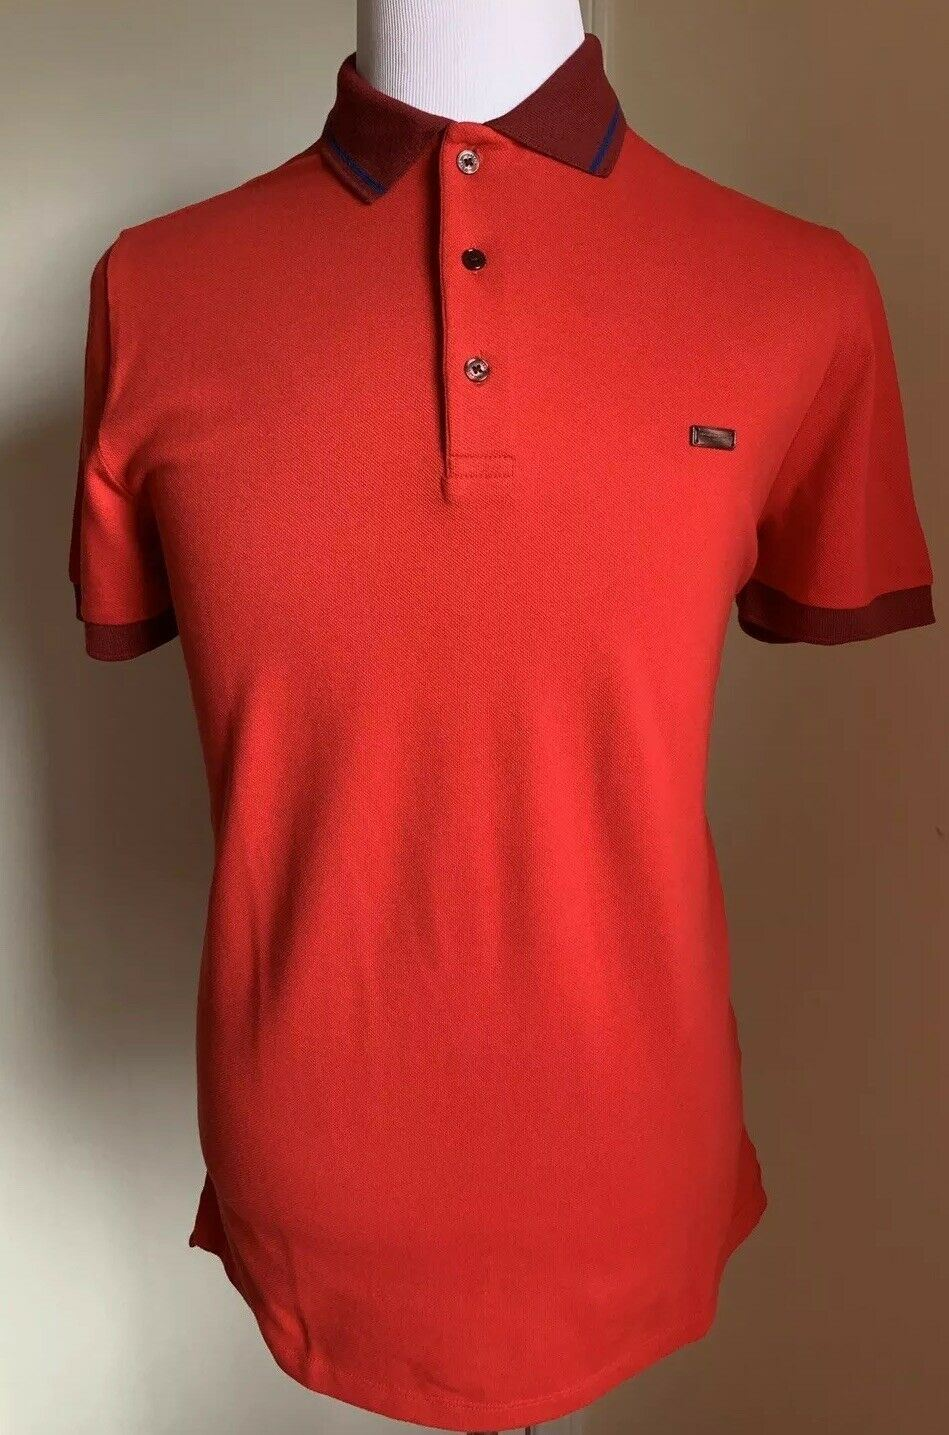 NWT $295 Burberry London Mens Polo Shirt Red Size XS US